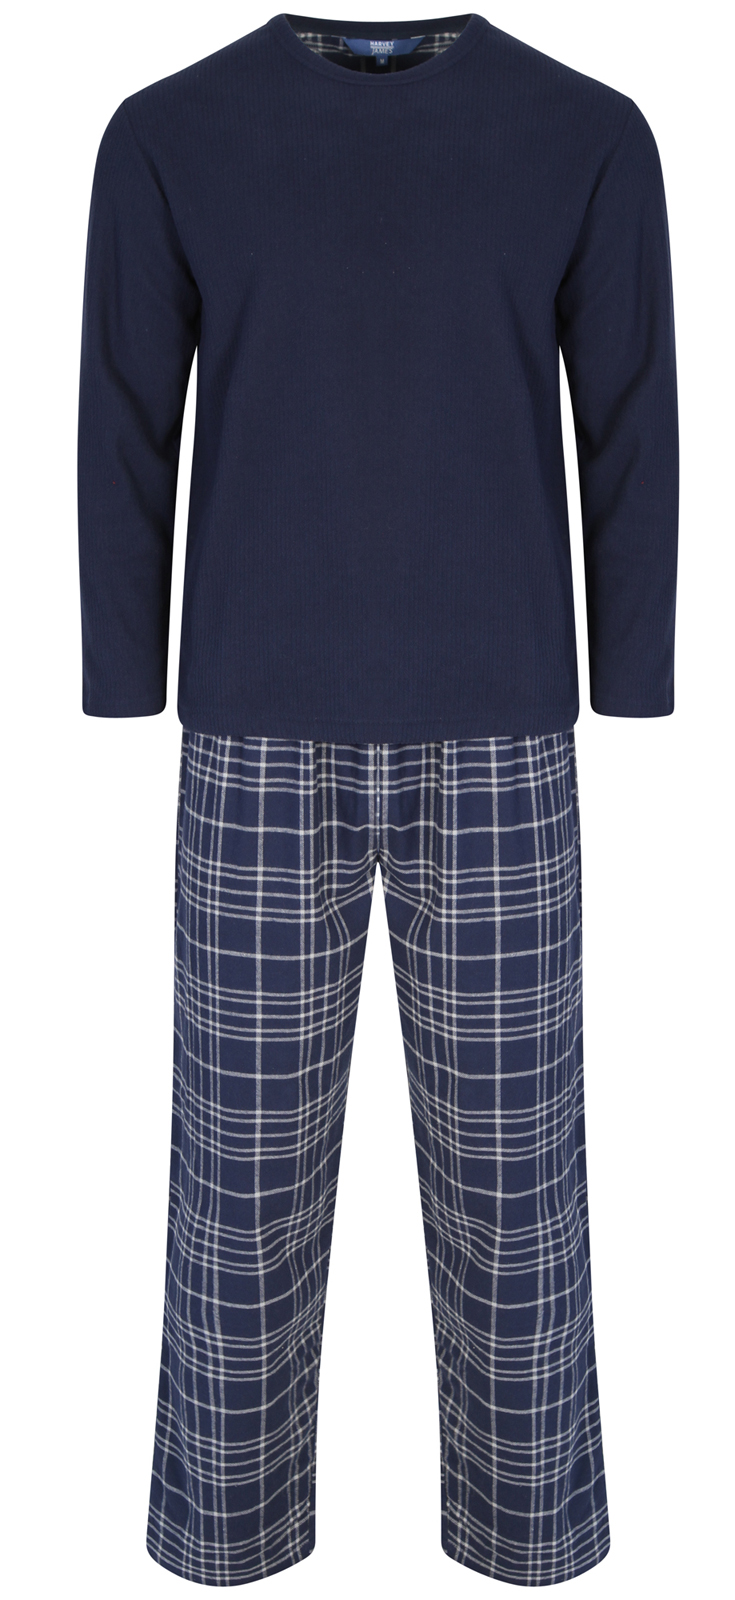 Men's Pyjama Sets. Cosy up for a good night's sleep in men's pyjama sets, from classic shirts and bottoms to shorts and tees. Or, buy a set as a gift for a family member or loved one, everyone loves pyjamas!